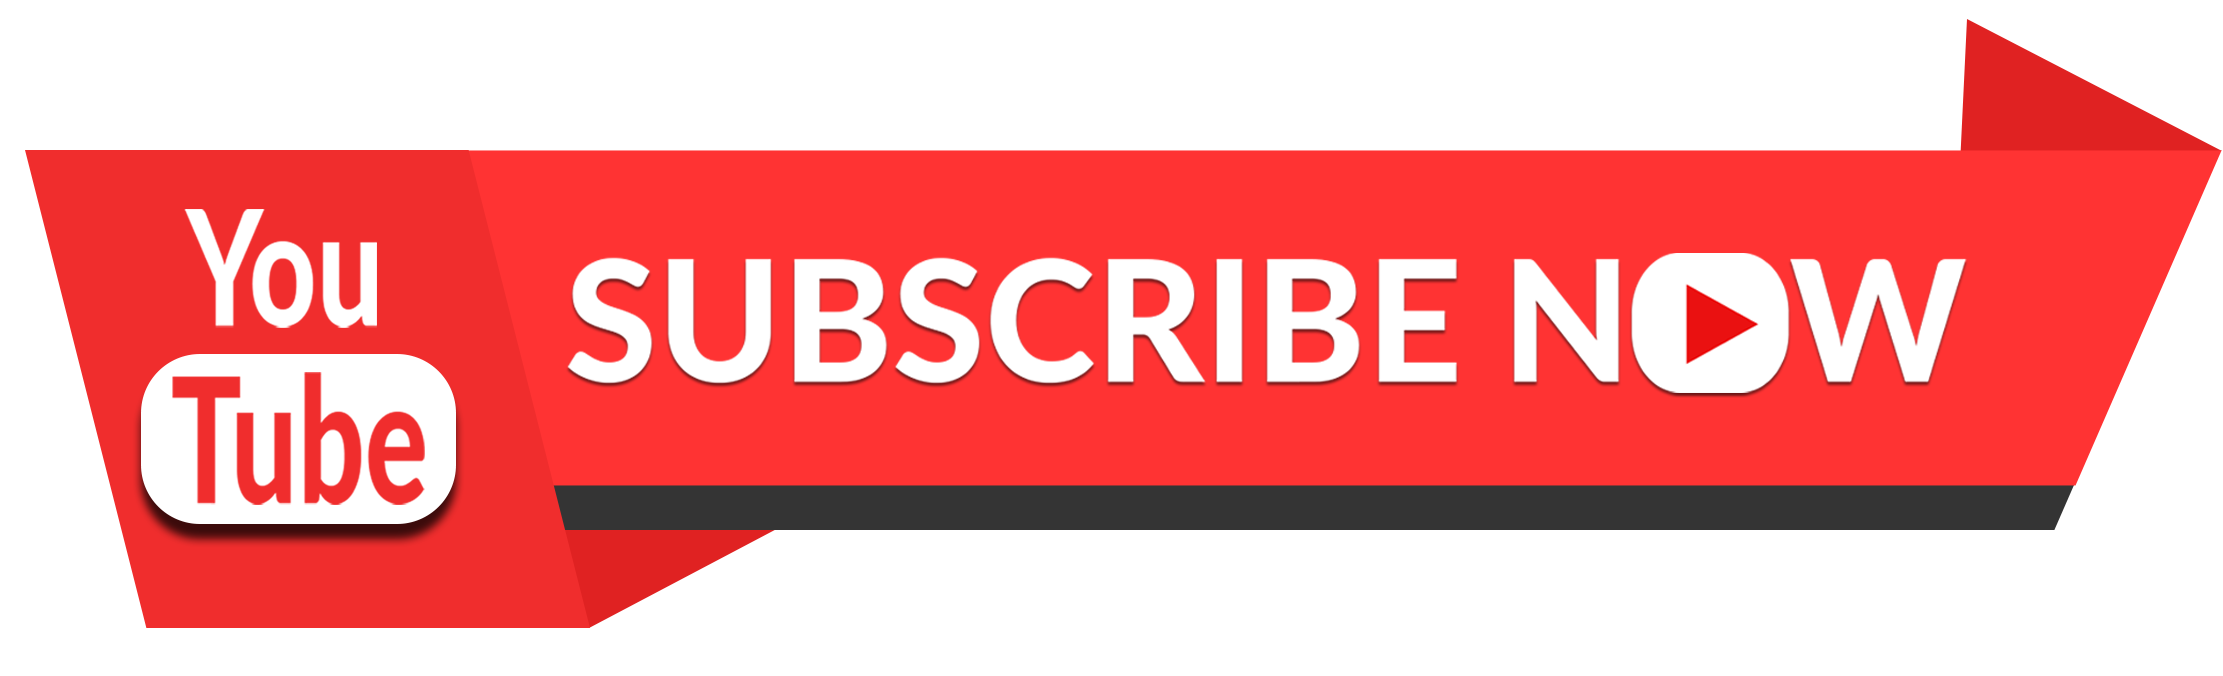 e28094pngtreee28094youtube20subscribe20button20vector20banner_4121884